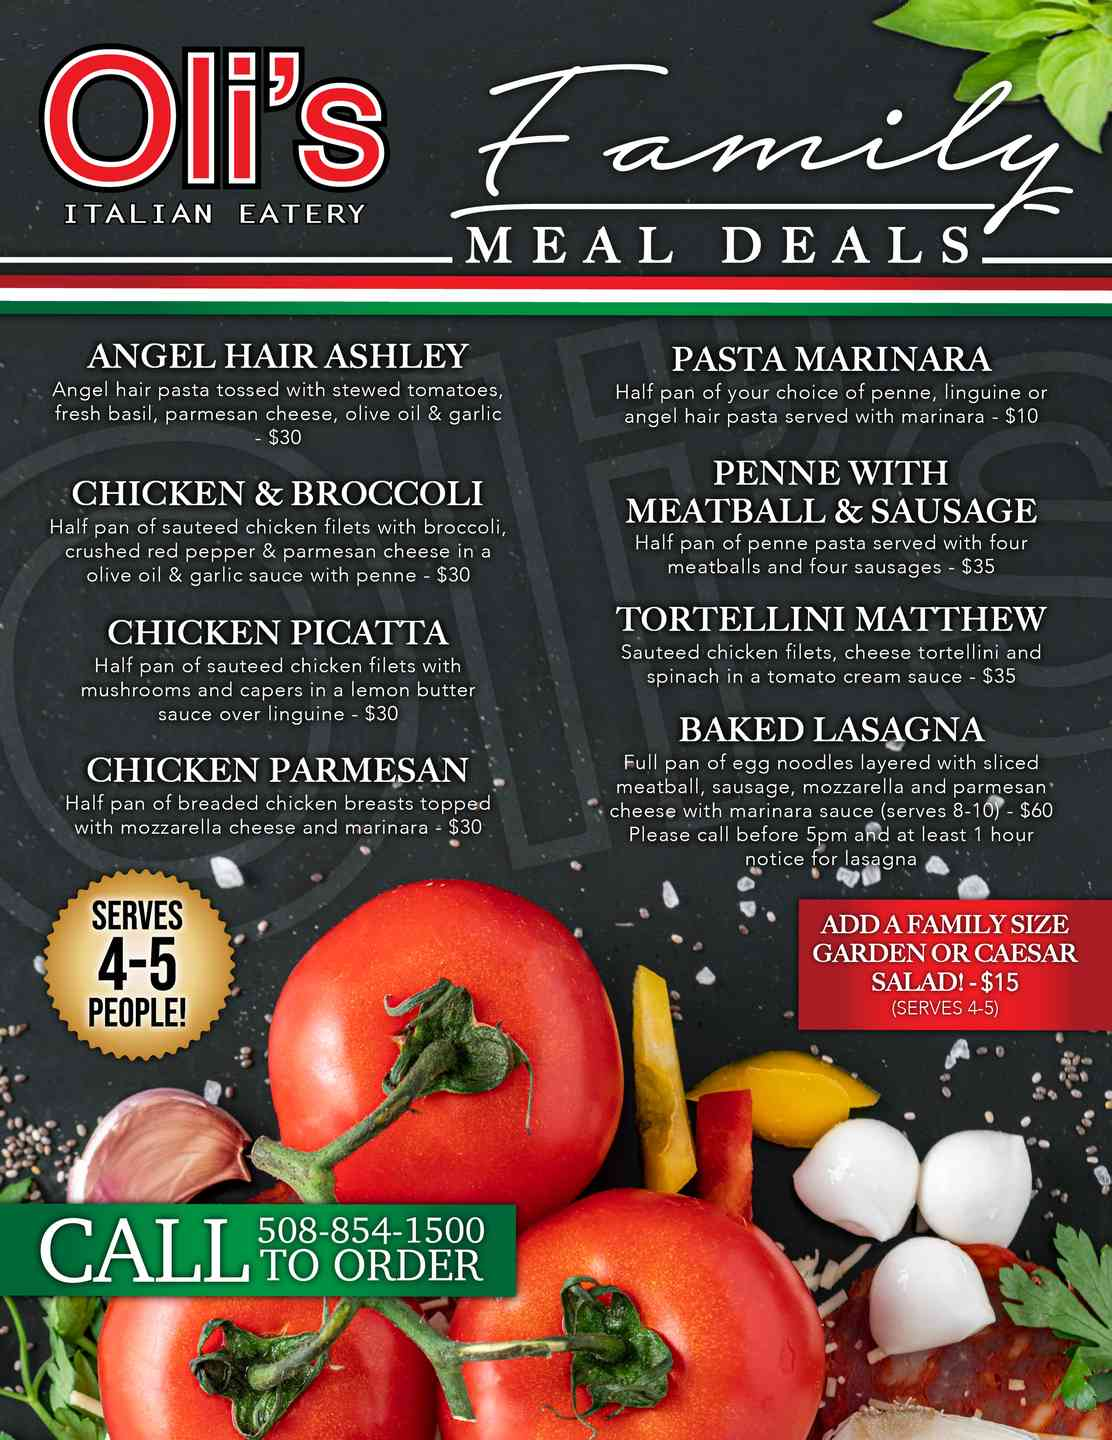 Tomato Pie Bar & Grill Family Meal Deal menu